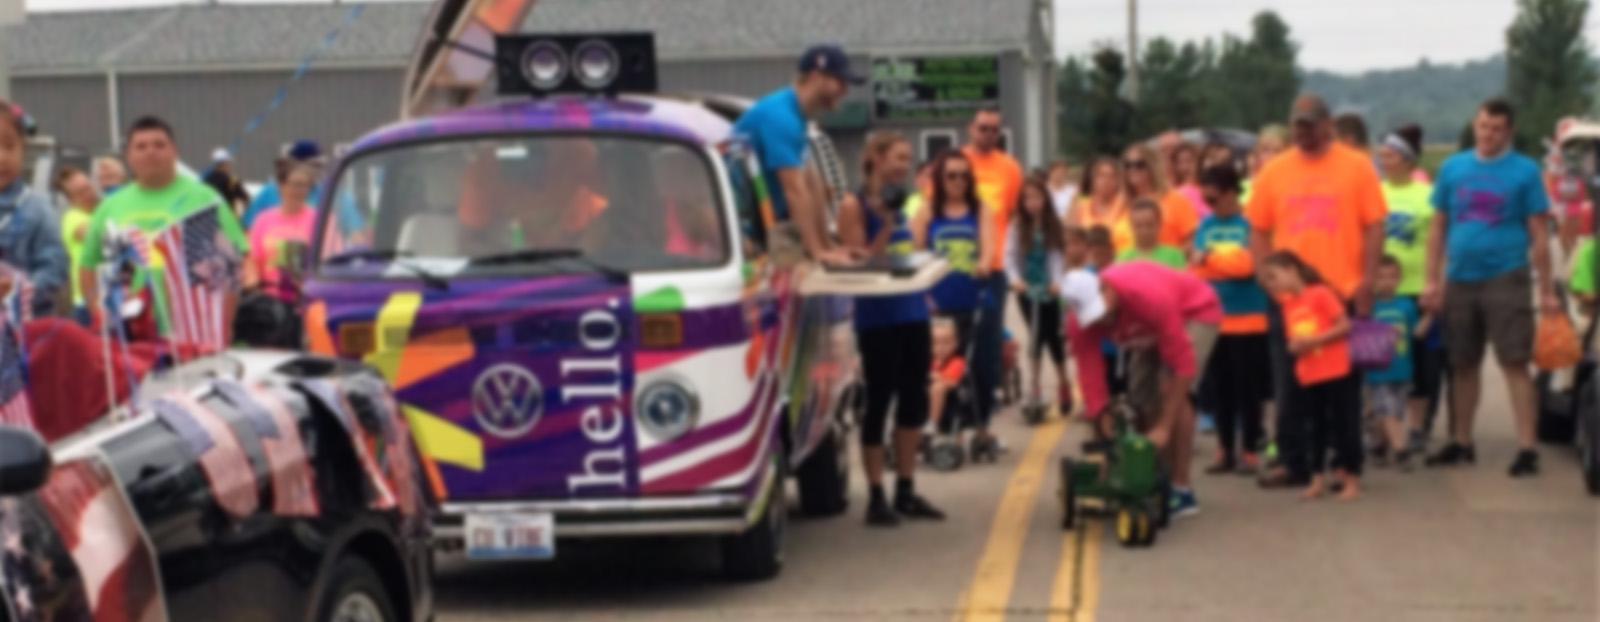 van in a parade with a group of people standing next to it and a man in a blue shirt leaning out the side